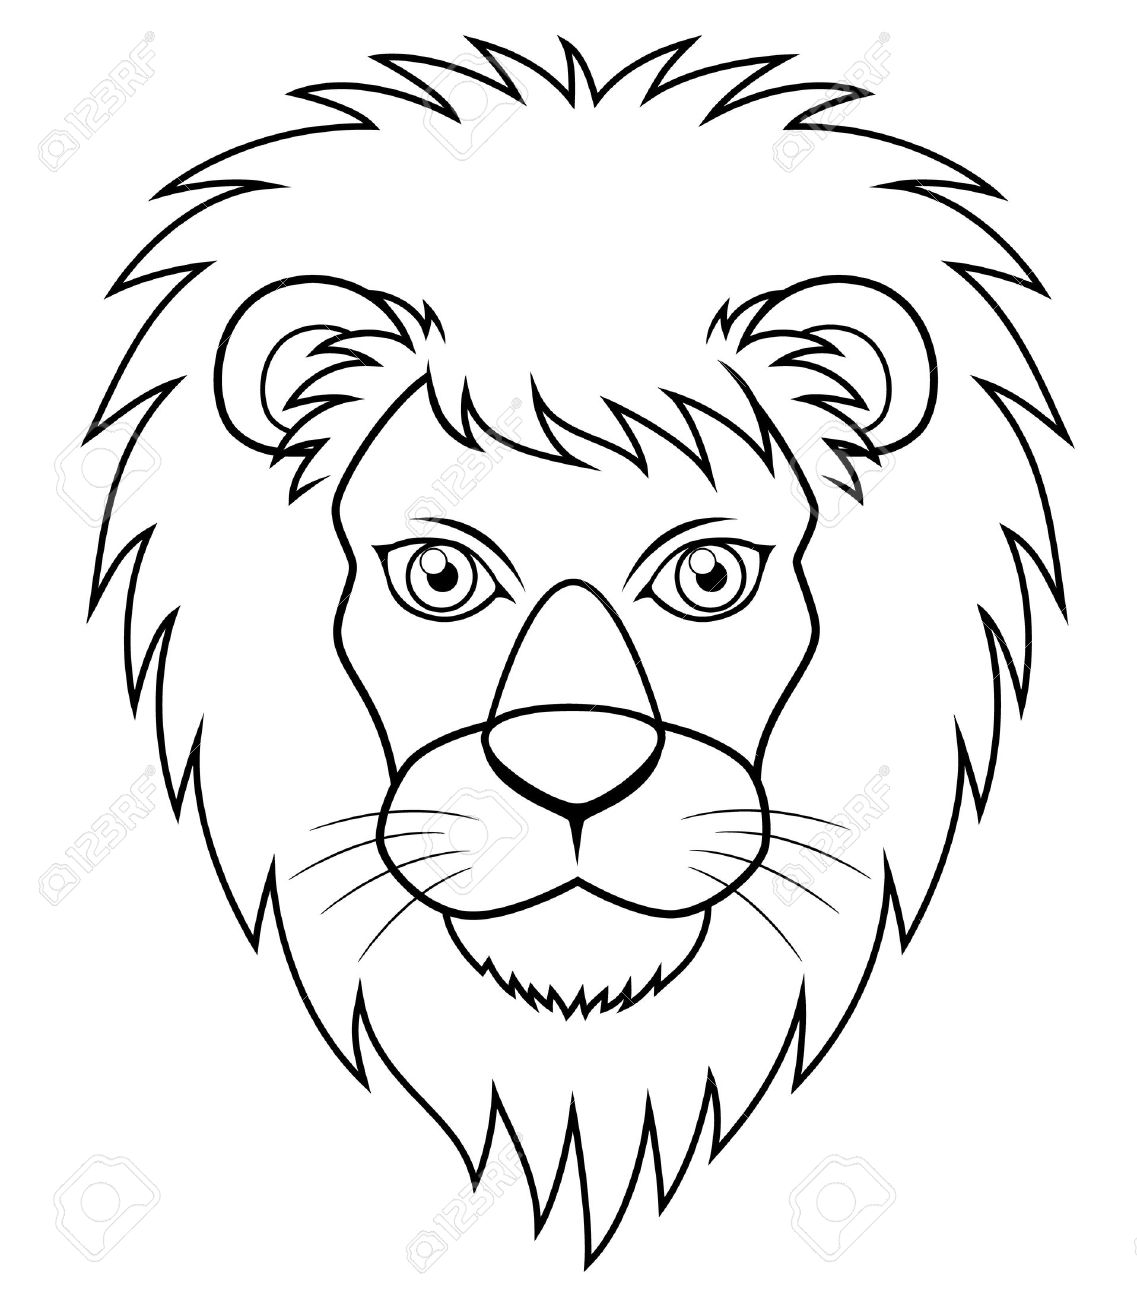 illustration of lion face outline stock vector 16715417